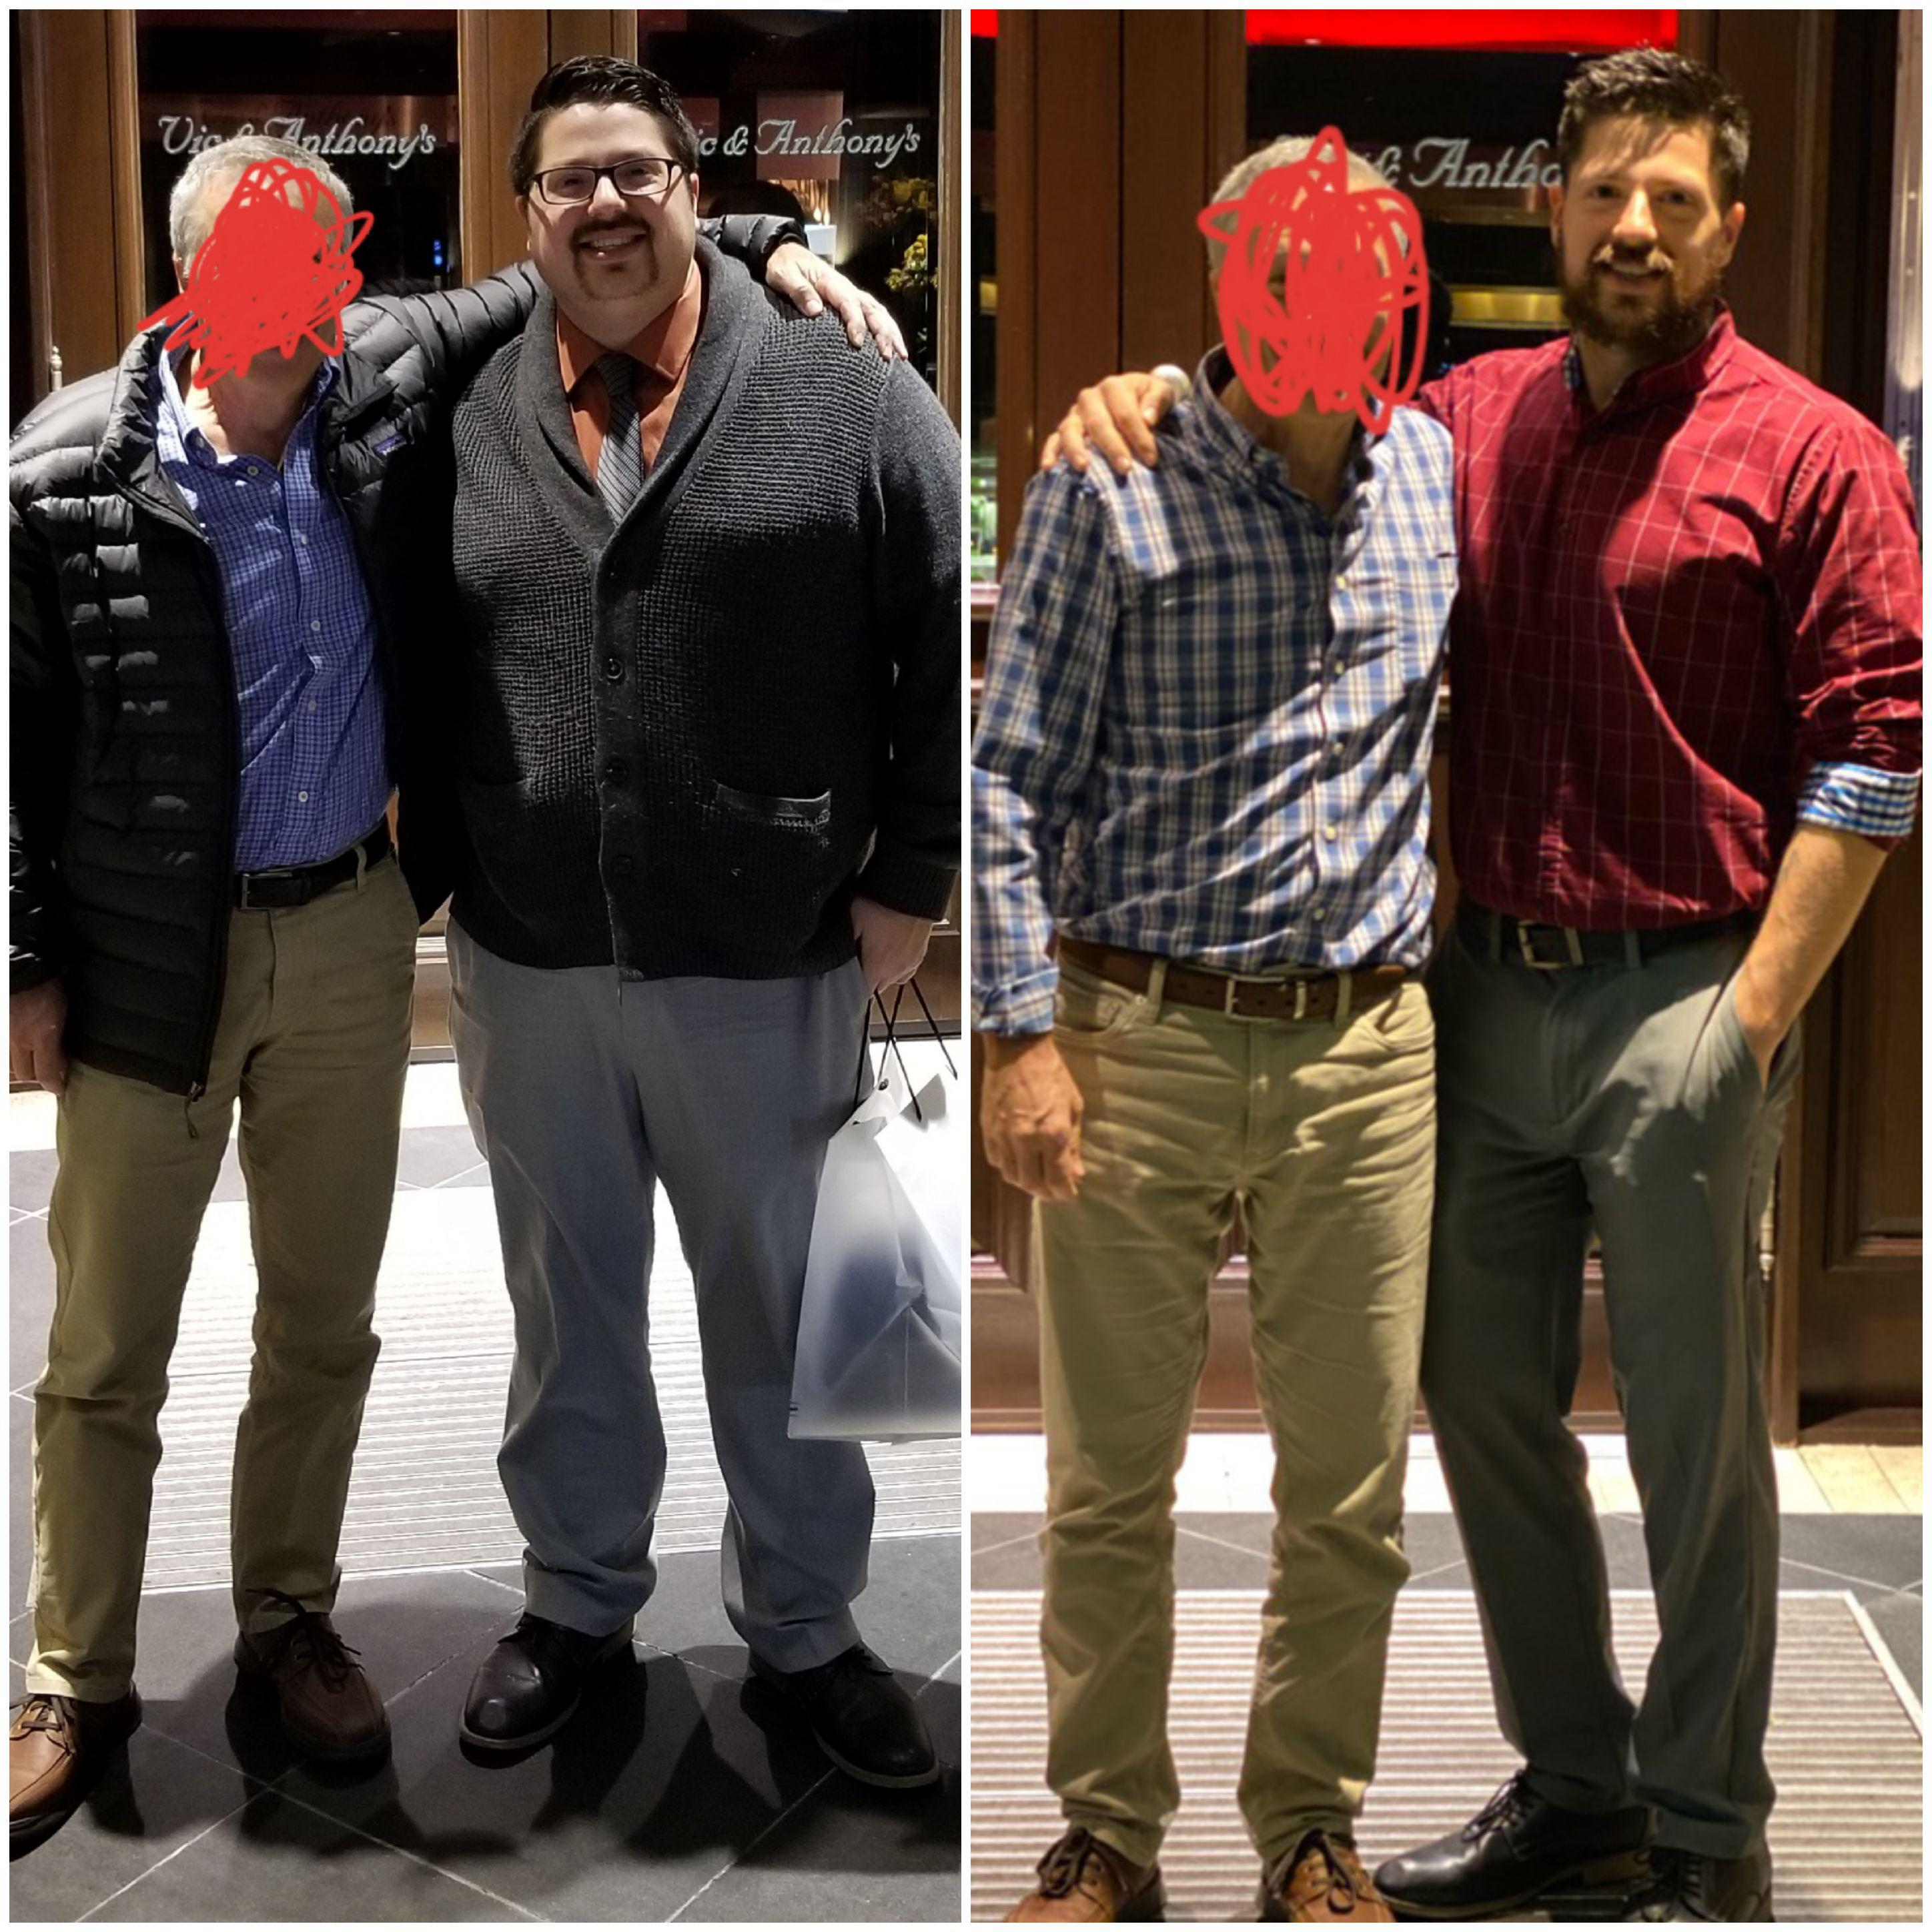 100 lbs Weight Loss Before and After 5 feet 10 Male 275 lbs to 175 lbs